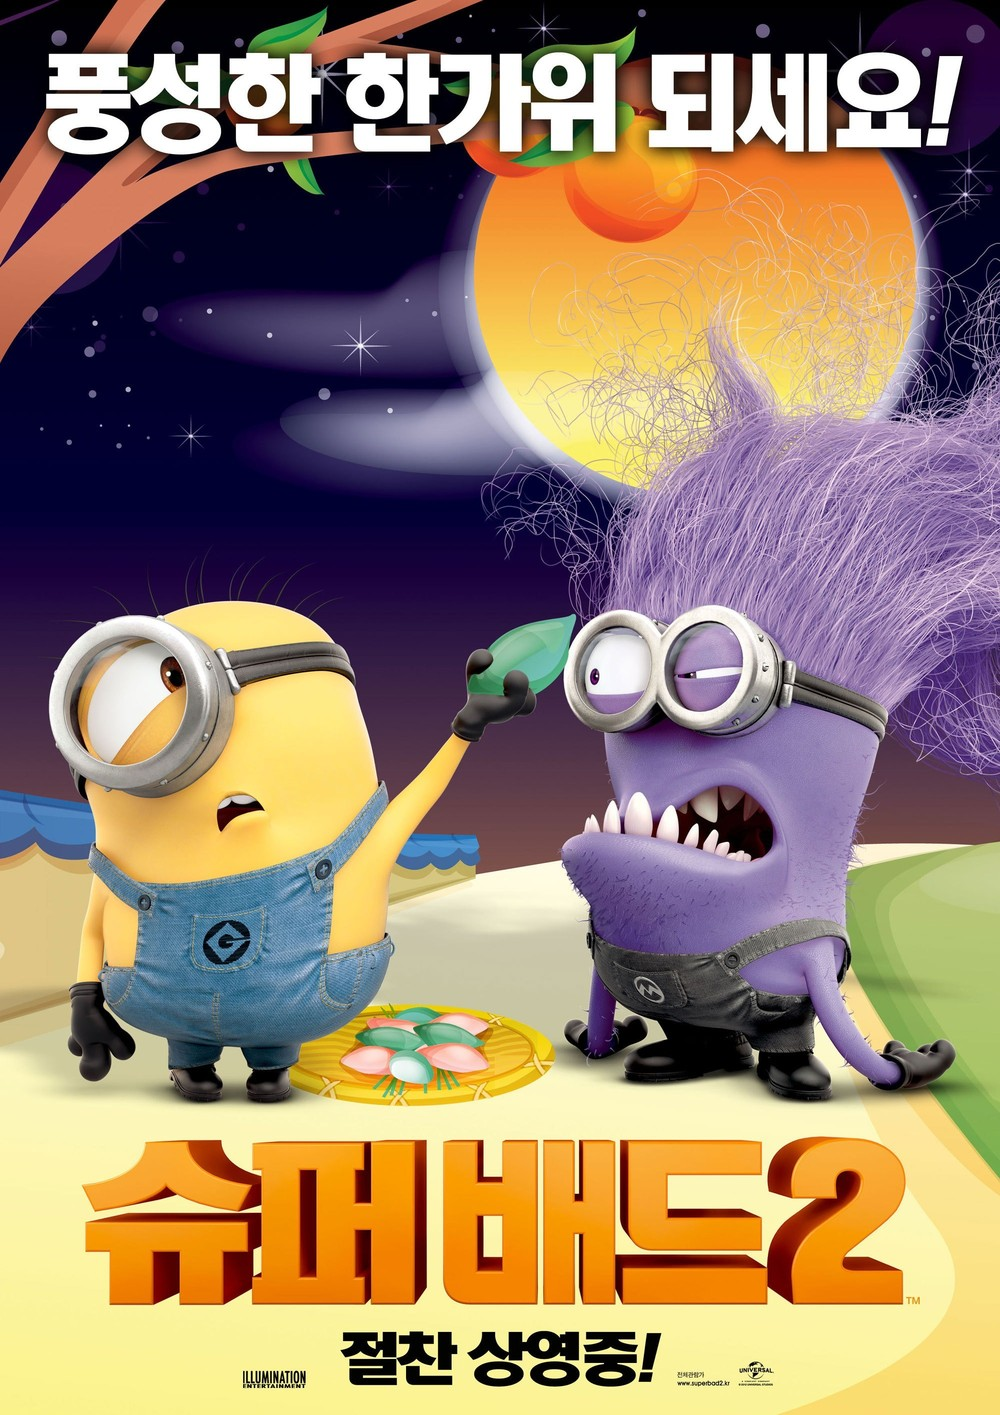 Despicable me 2 release date in Brisbane